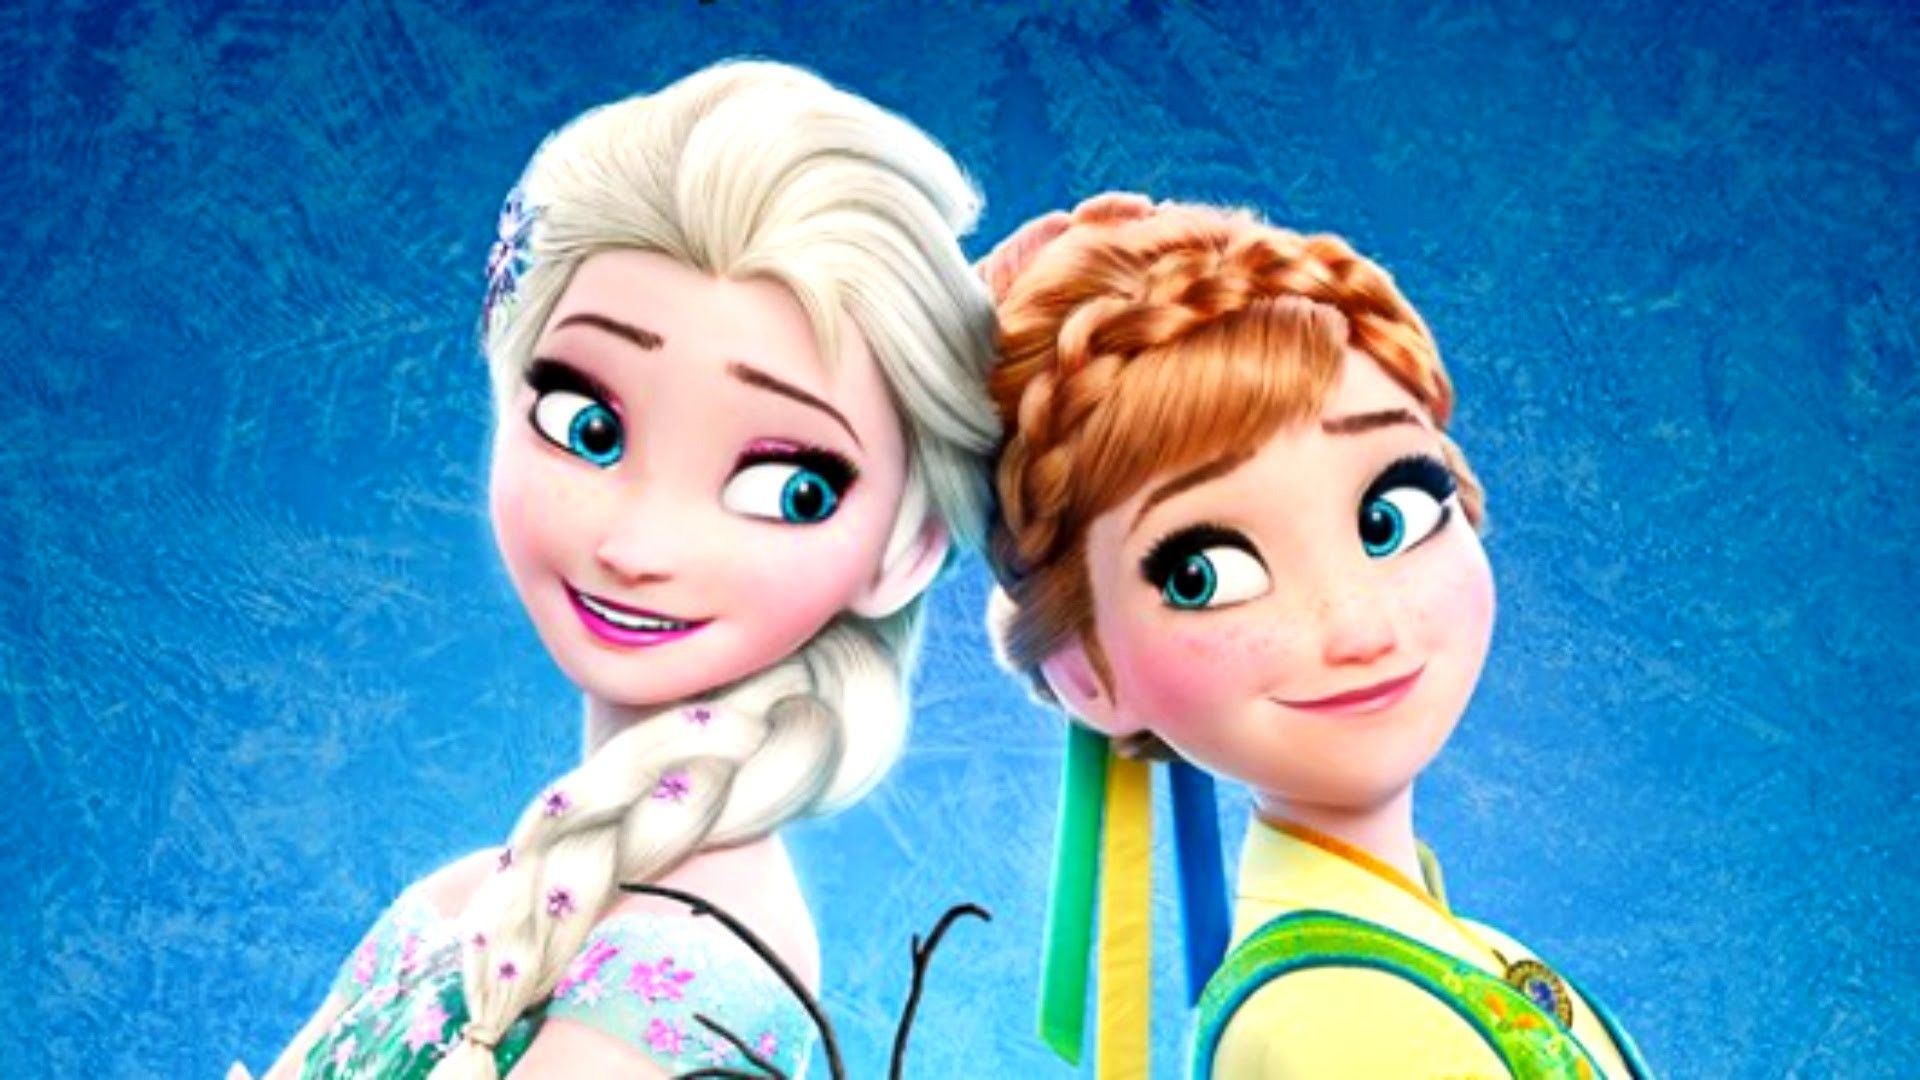 Frozen 2 Wallpapers Top Free Frozen 2 Backgrounds Wallpaperaccess